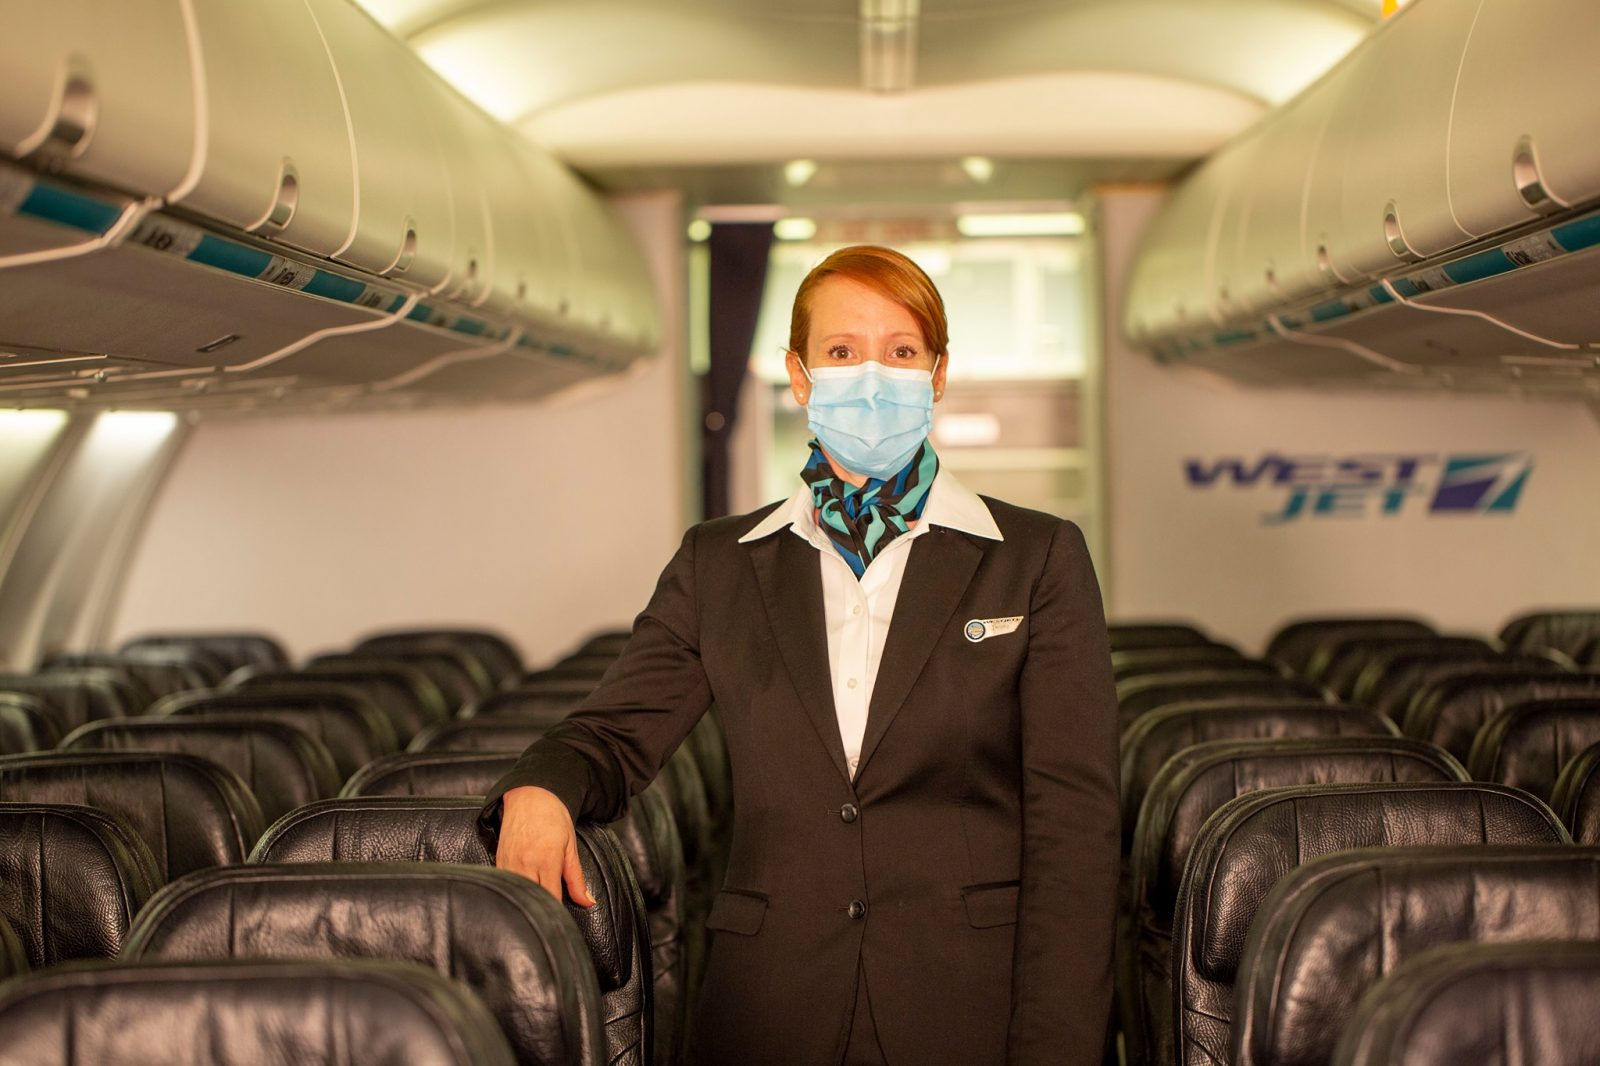 Masking The Truth On WestJet - Live and Let's Fly